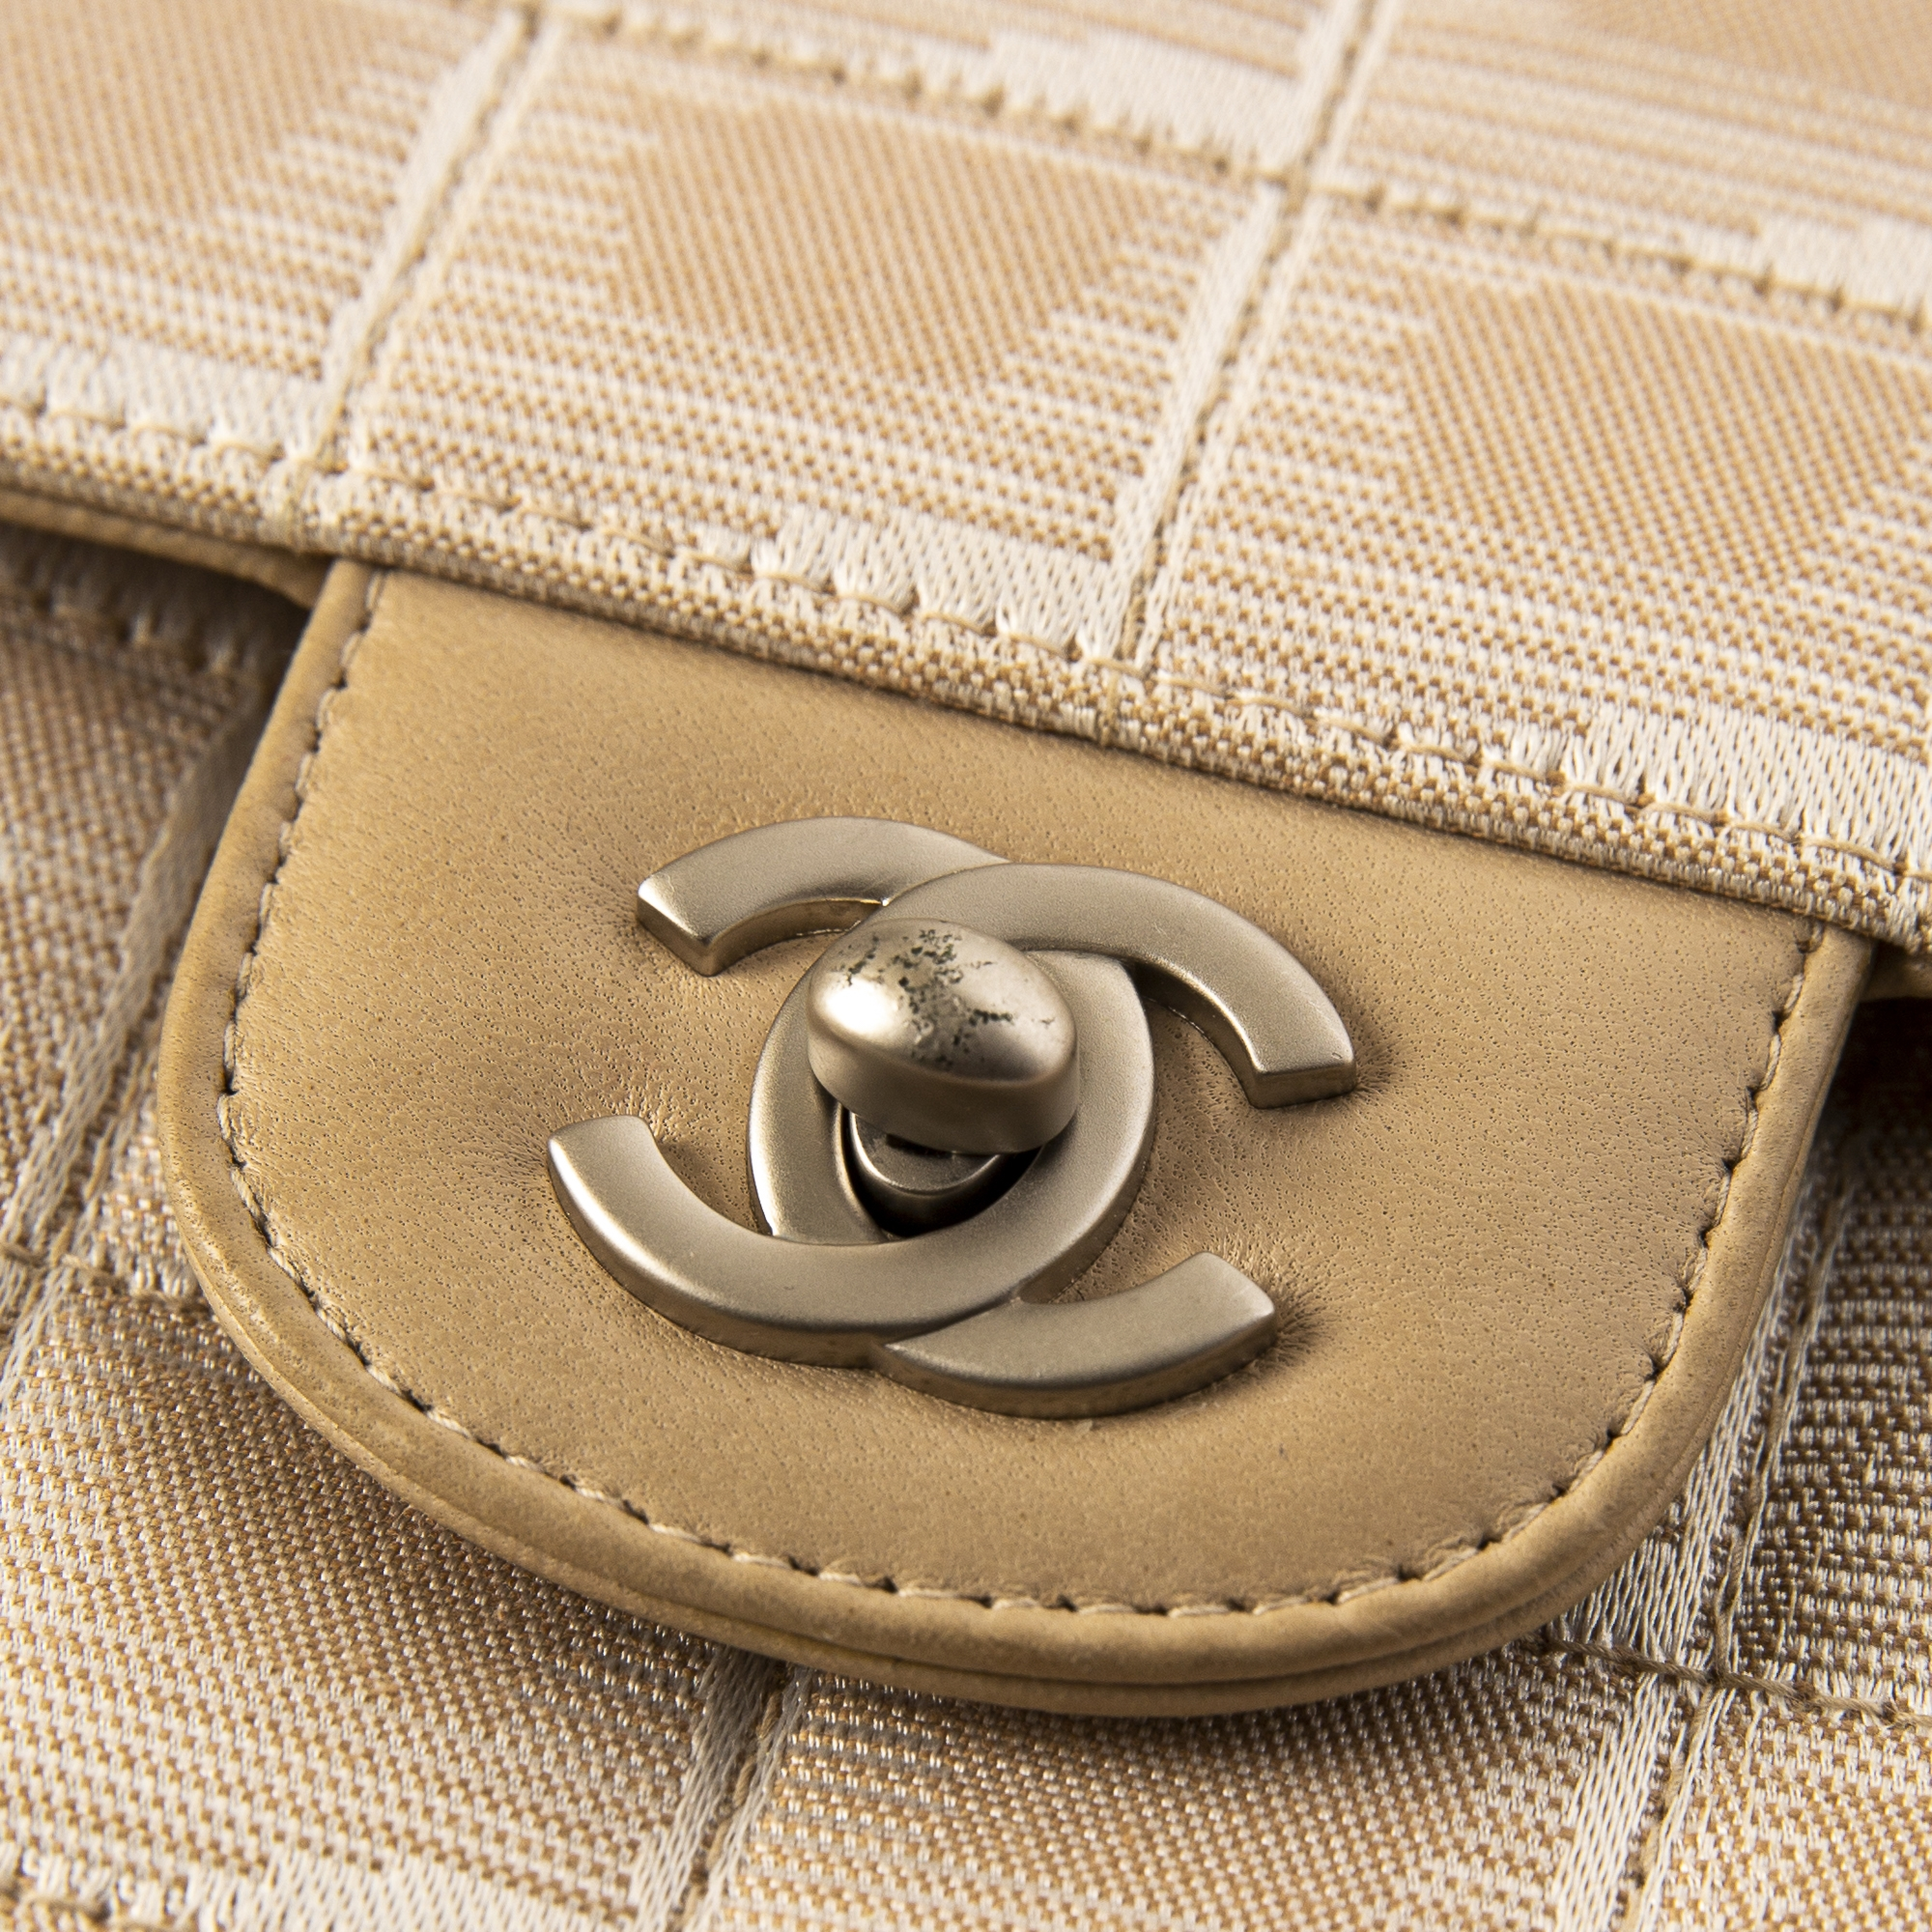 Chanel Beige Canvas Travel East West Flap Bag